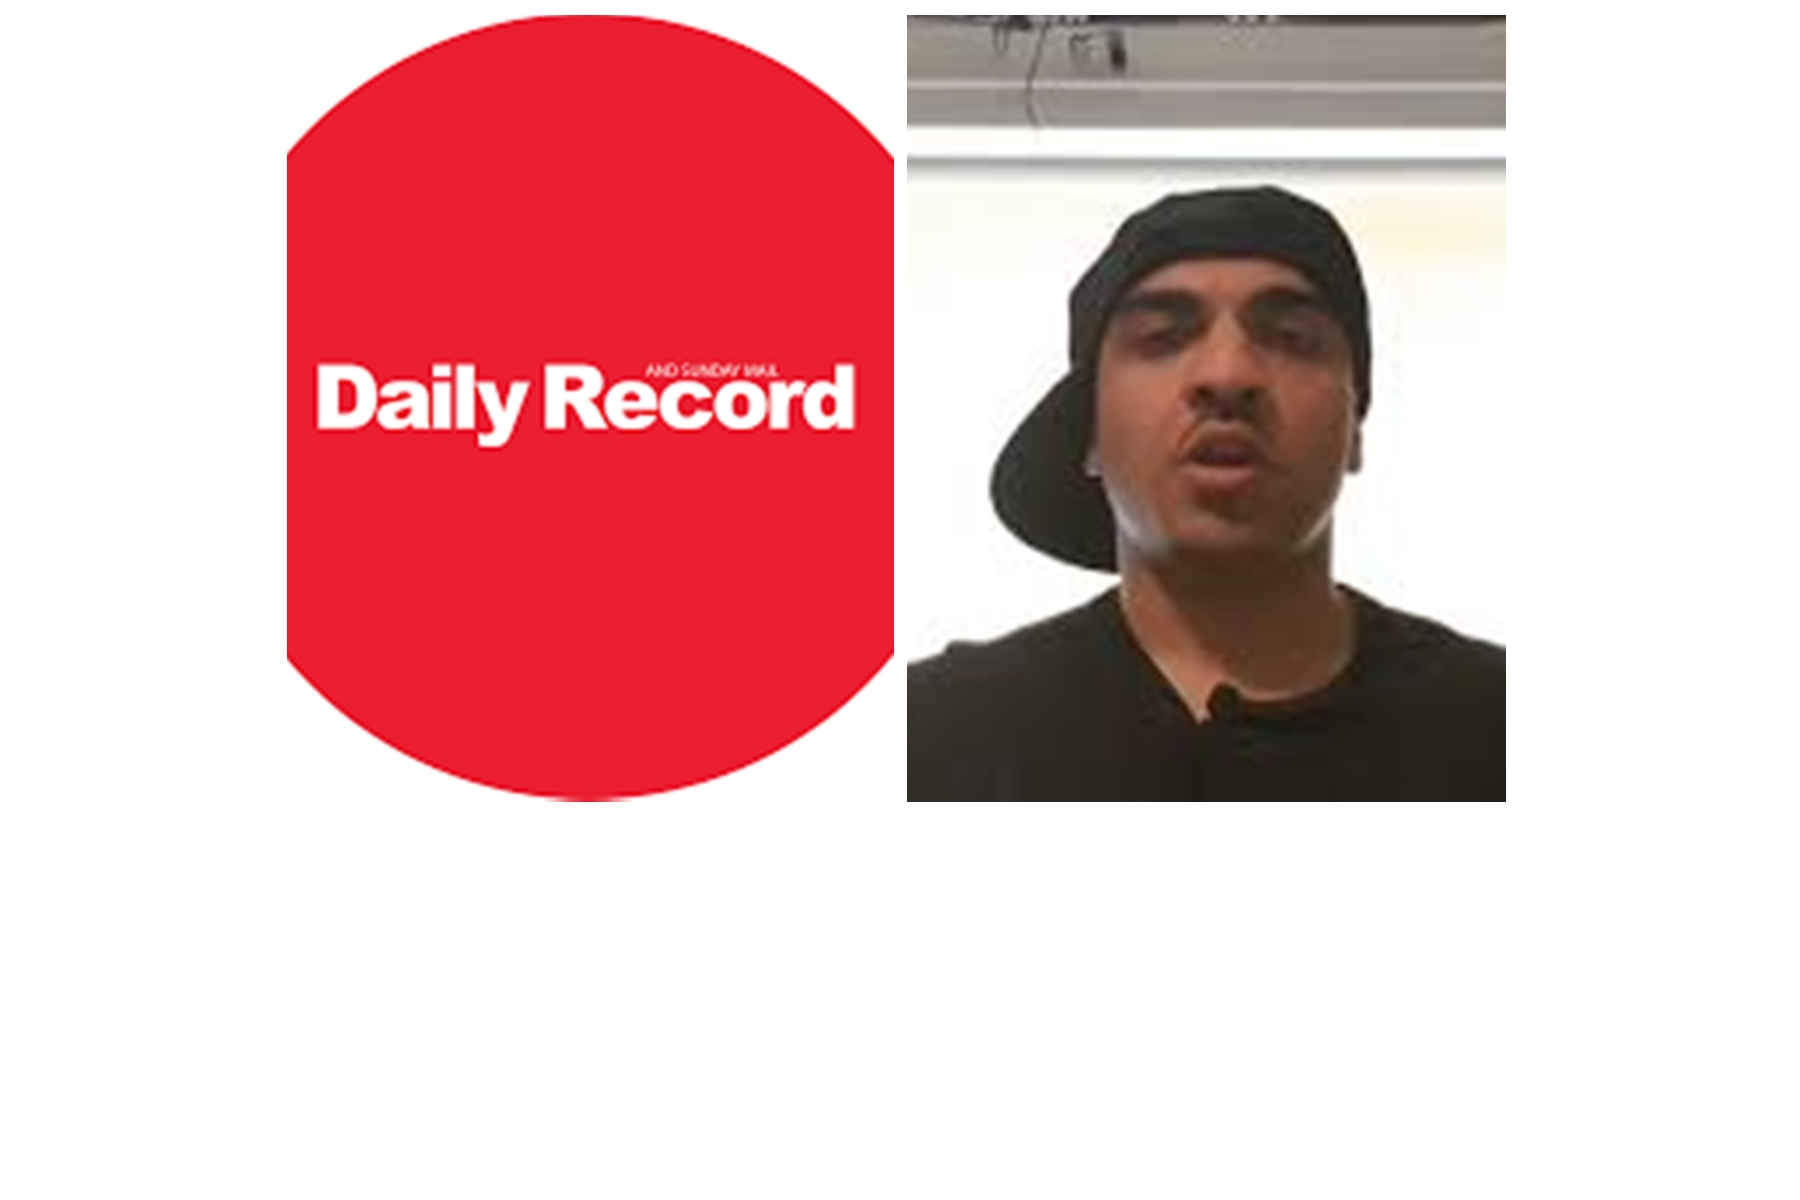 """Creepy Reporter Jack Aitchison Slammed After Falsely Accusing Glasgow Dating Coach Addy Agame, For Warped Newspaper """"Daily Record"""""""